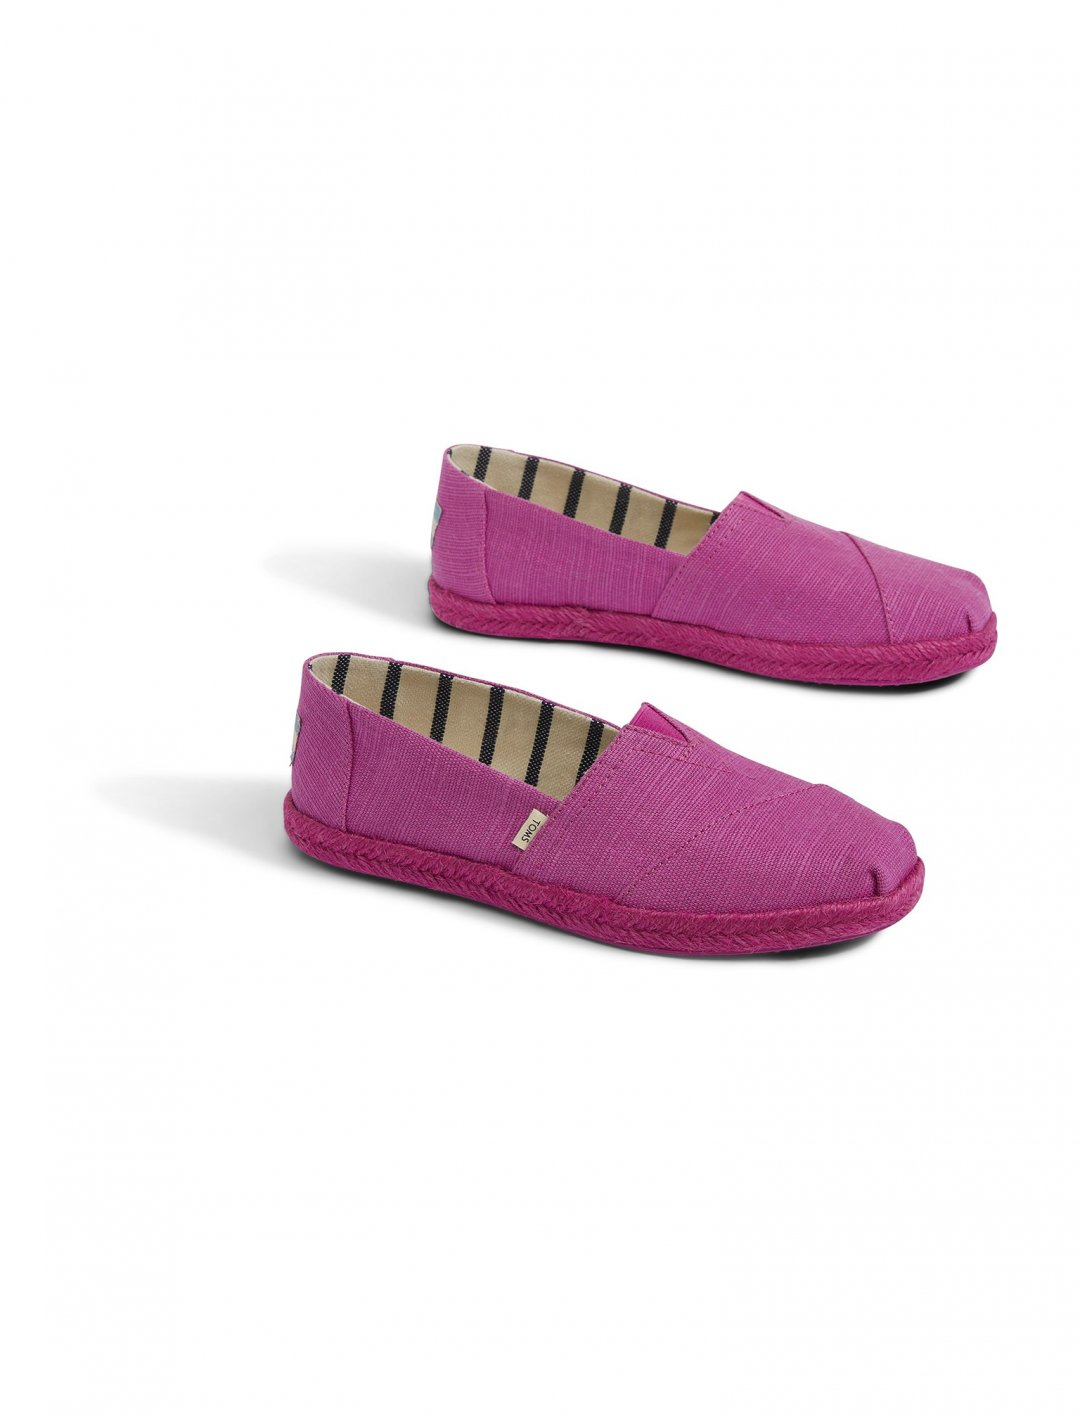 "Women's Espadrilles {""id"":12,""product_section_id"":1,""name"":""Shoes"",""order"":12} Toms"